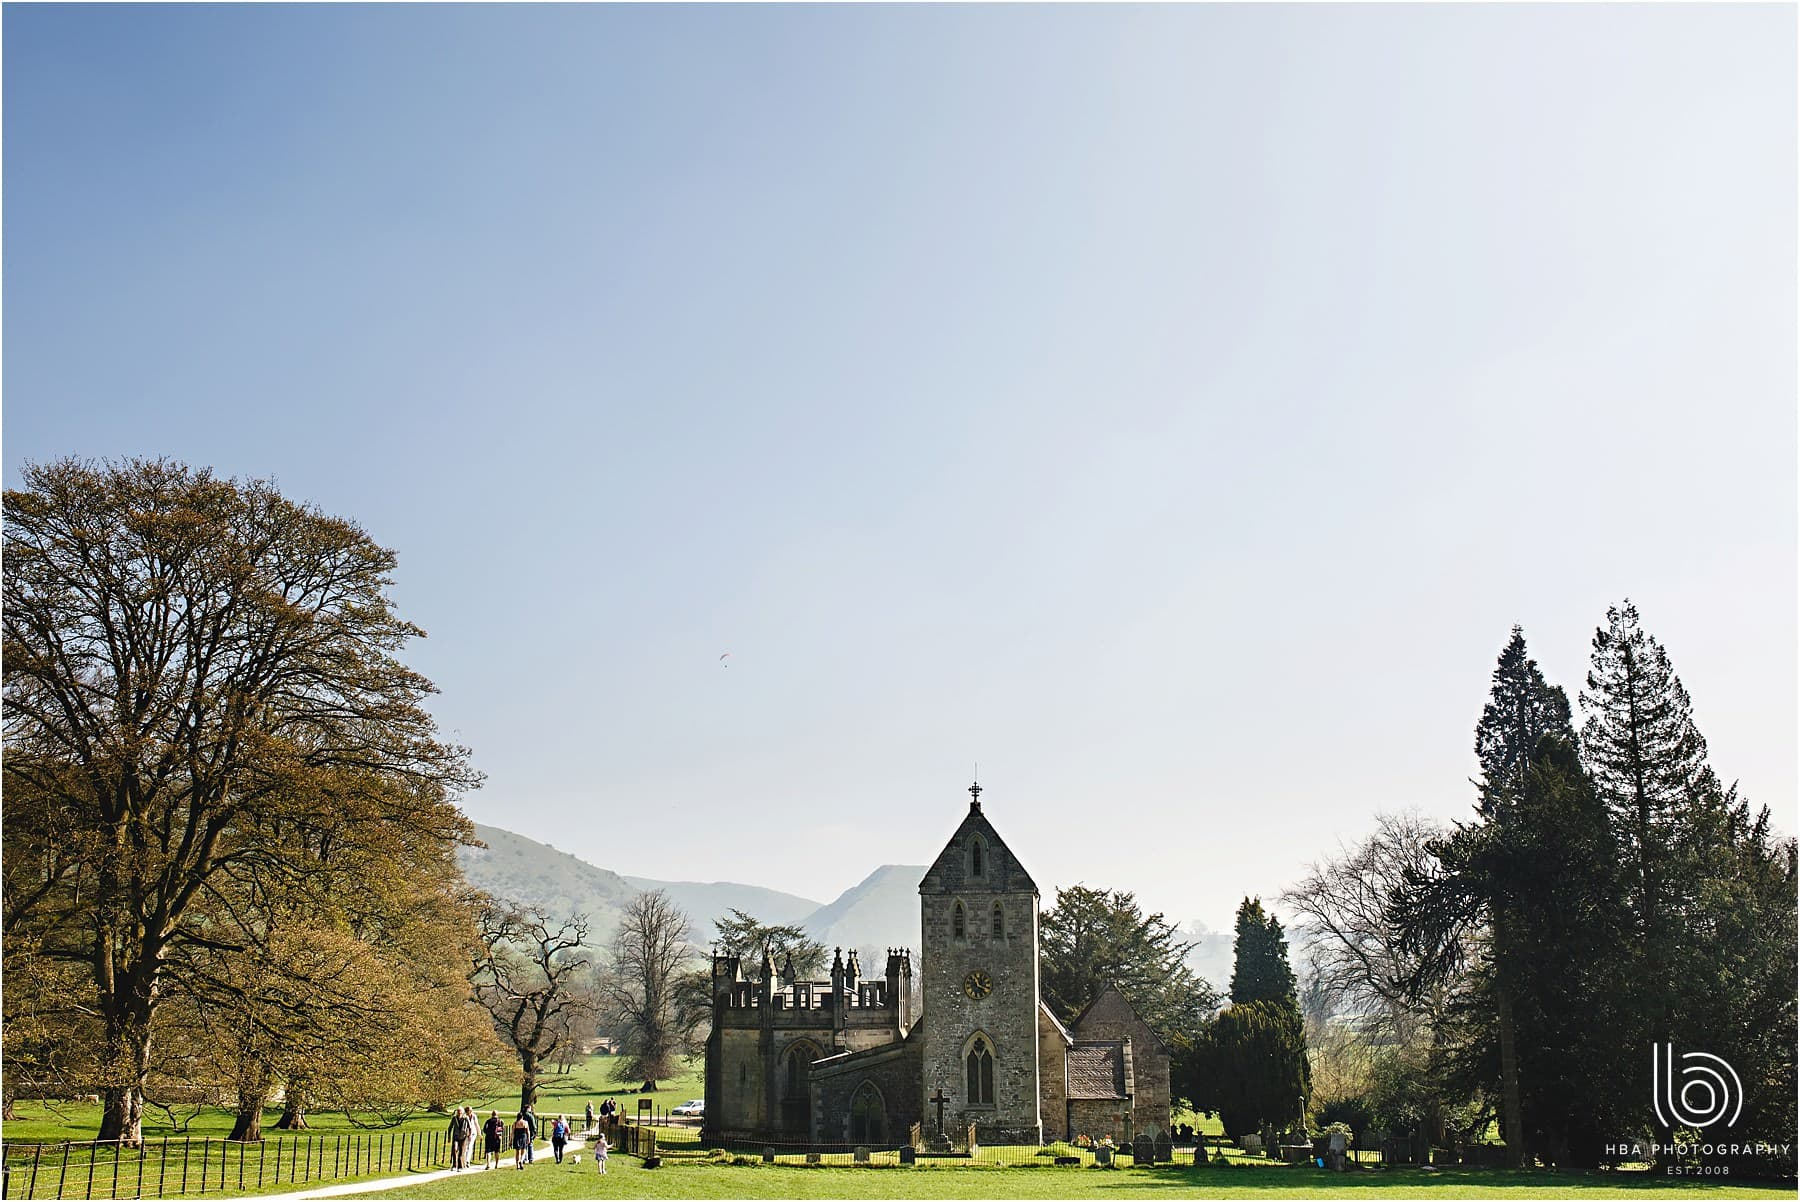 the church at Ilam in the Peak District